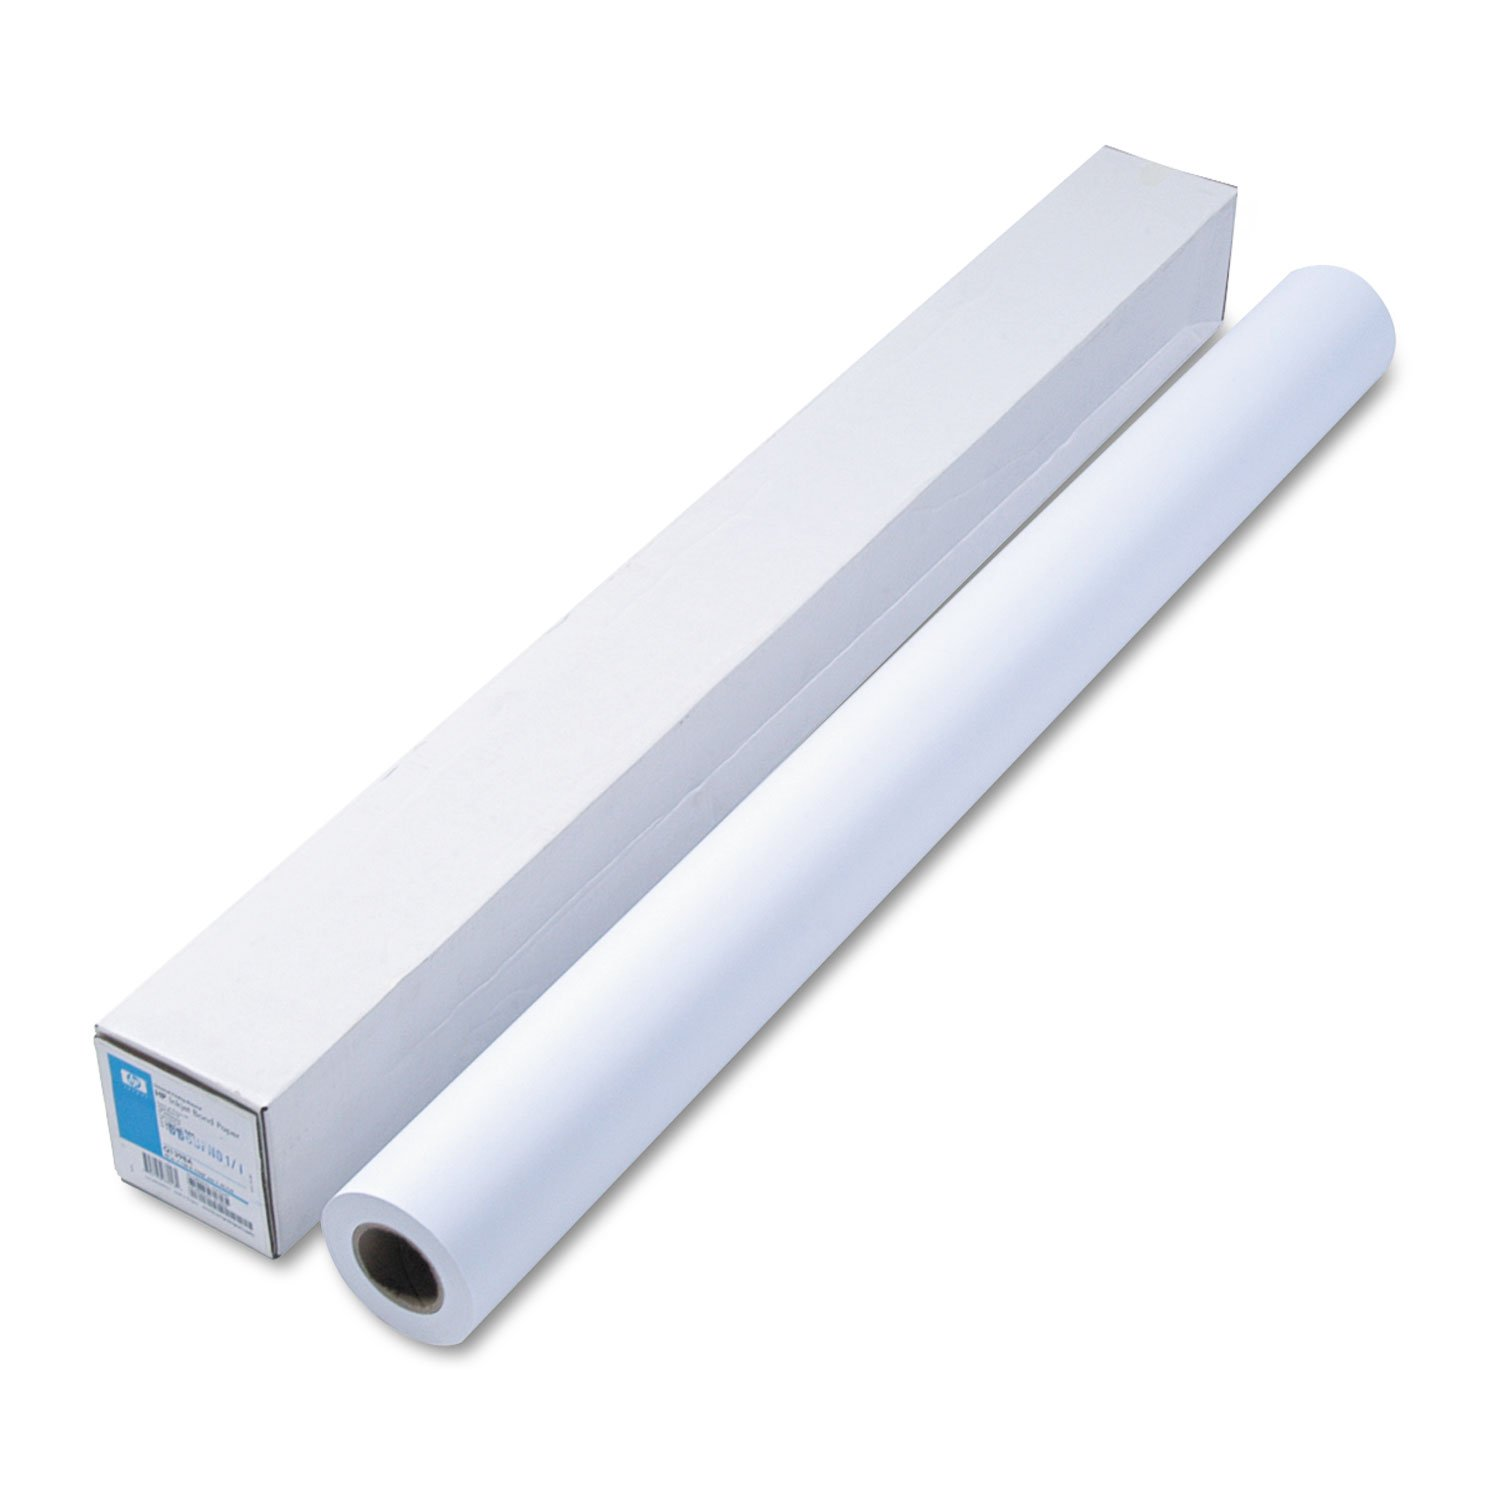 HP Q1398A Designjet Large Format Universal Bond, 21 lbs, 42-Inch x 150 ft, White by HP